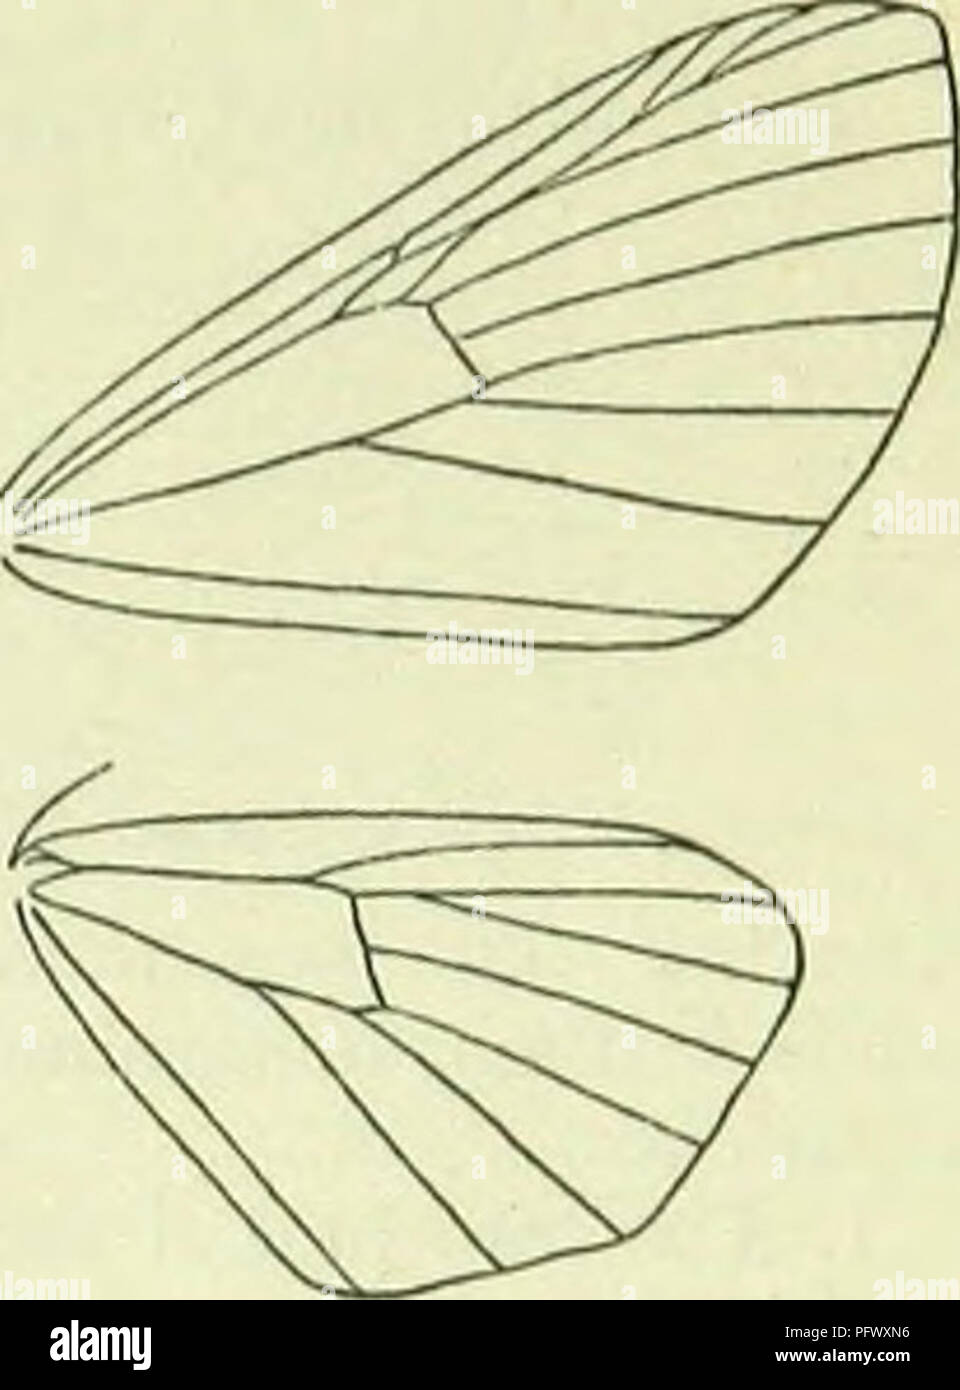 . A handbook of British lepidoptera. Lepidoptera. CHLOROOLYSTIS] HYDRIOMENIDAE. Noumtion of Chloroel'/stis redangulata. curved, posterior twice angulated, lower angle more prominent; a black discal mark. Hindwings as forewings. Britain to Ross, Ireland, common ; N. and C. Europe; 6, 7. Larva rather stout, pale yellowish- green ; dorsal line sometimes darker green or dull red ; spiracular darker; incisions reddish : on flowers of apple and pear; 4, 5. Sometimes injurious in orchards. 3. 0. debiliata, lib. 17-21 mm. Abdomen with broad blackish sub- basal ring. Forewings very pale green or green- - Stock Image